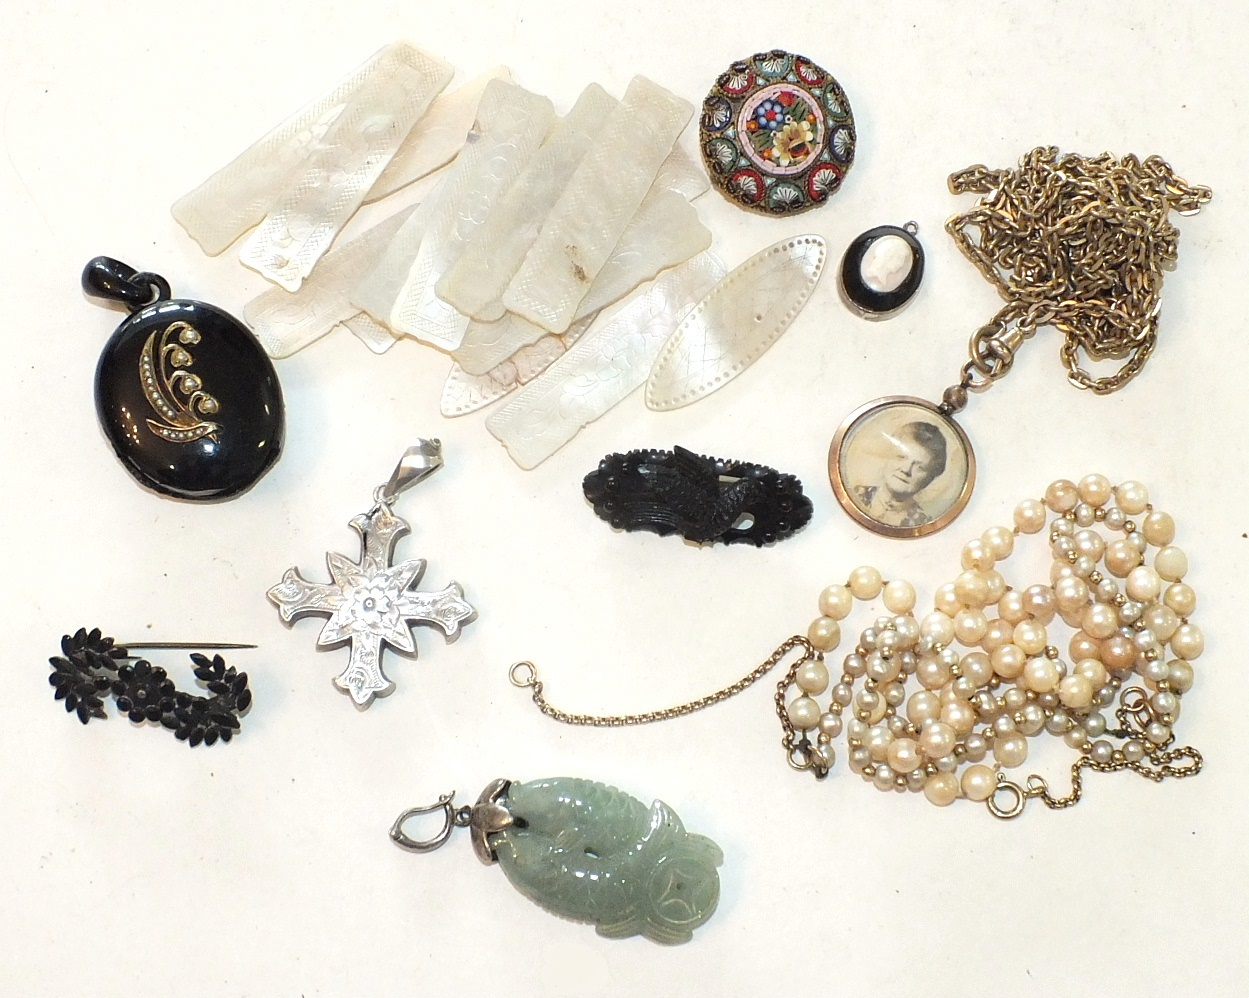 Lot 280 - A quantity of mother-of-pearl counters, a cultured pearl necklace, a micro-mosaic glass brooch and